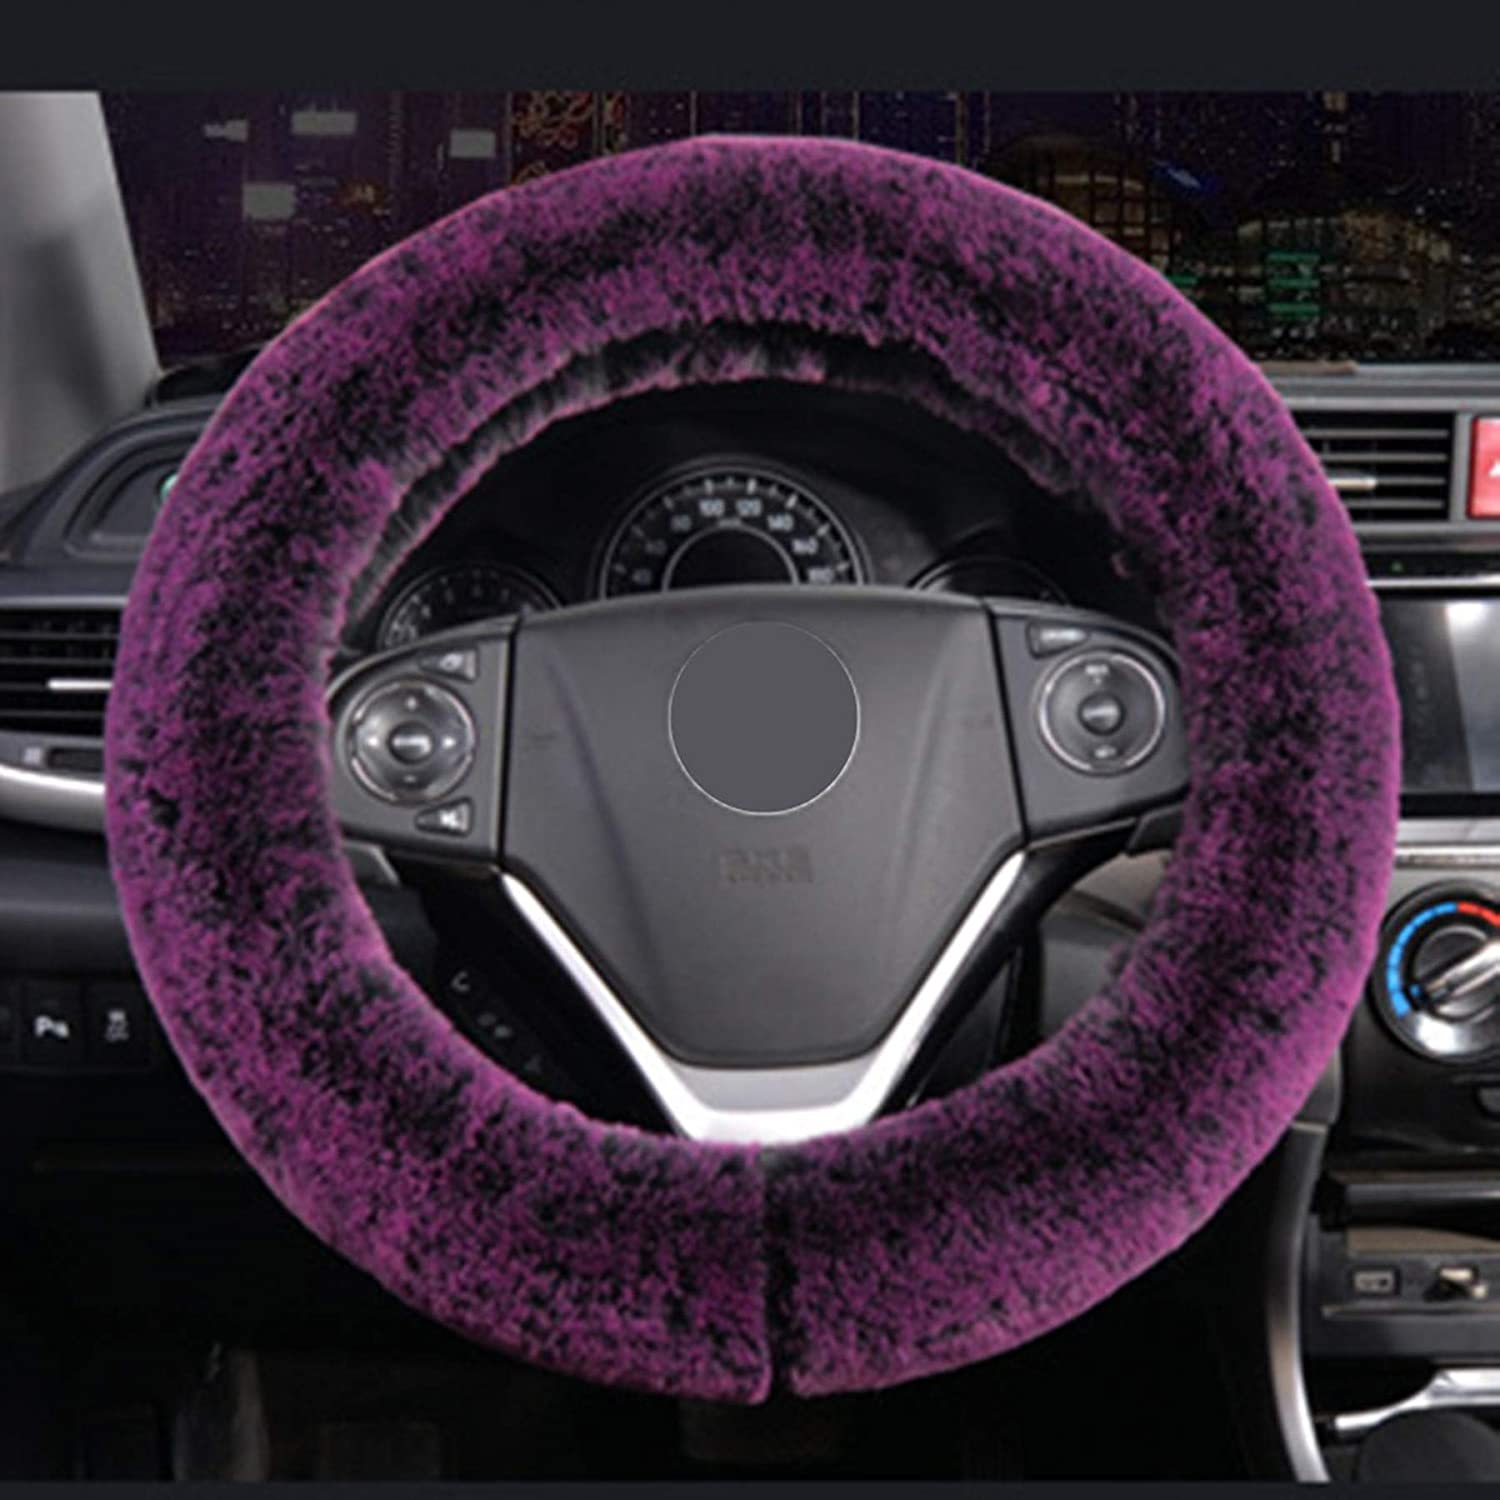 YOOFER Fluffy Plush Steering Wheel Cover for Warm in Winter Fuzzy Steering Wheel Cover,Purple Fluff Universal 15 inches